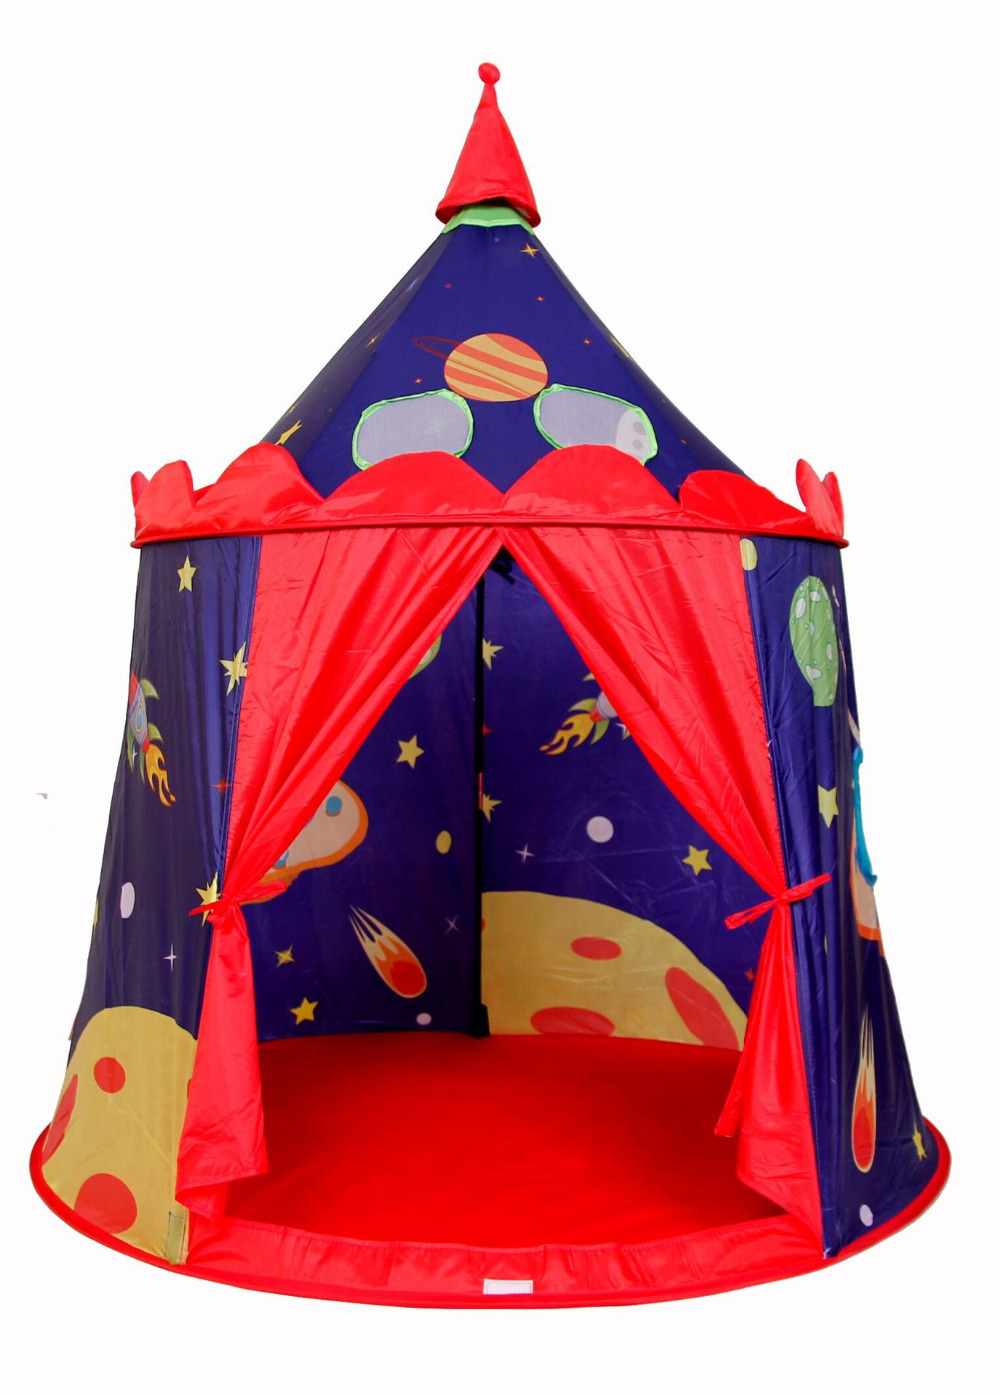 Creative New Design Universe Castle Children Kids Tent Purple Space Castle Game Play House Tents With Balls Safe Play Tents kids gift quality mushroom child tent 50 ocean balls kids game house 5 5 cm wave balls indoor